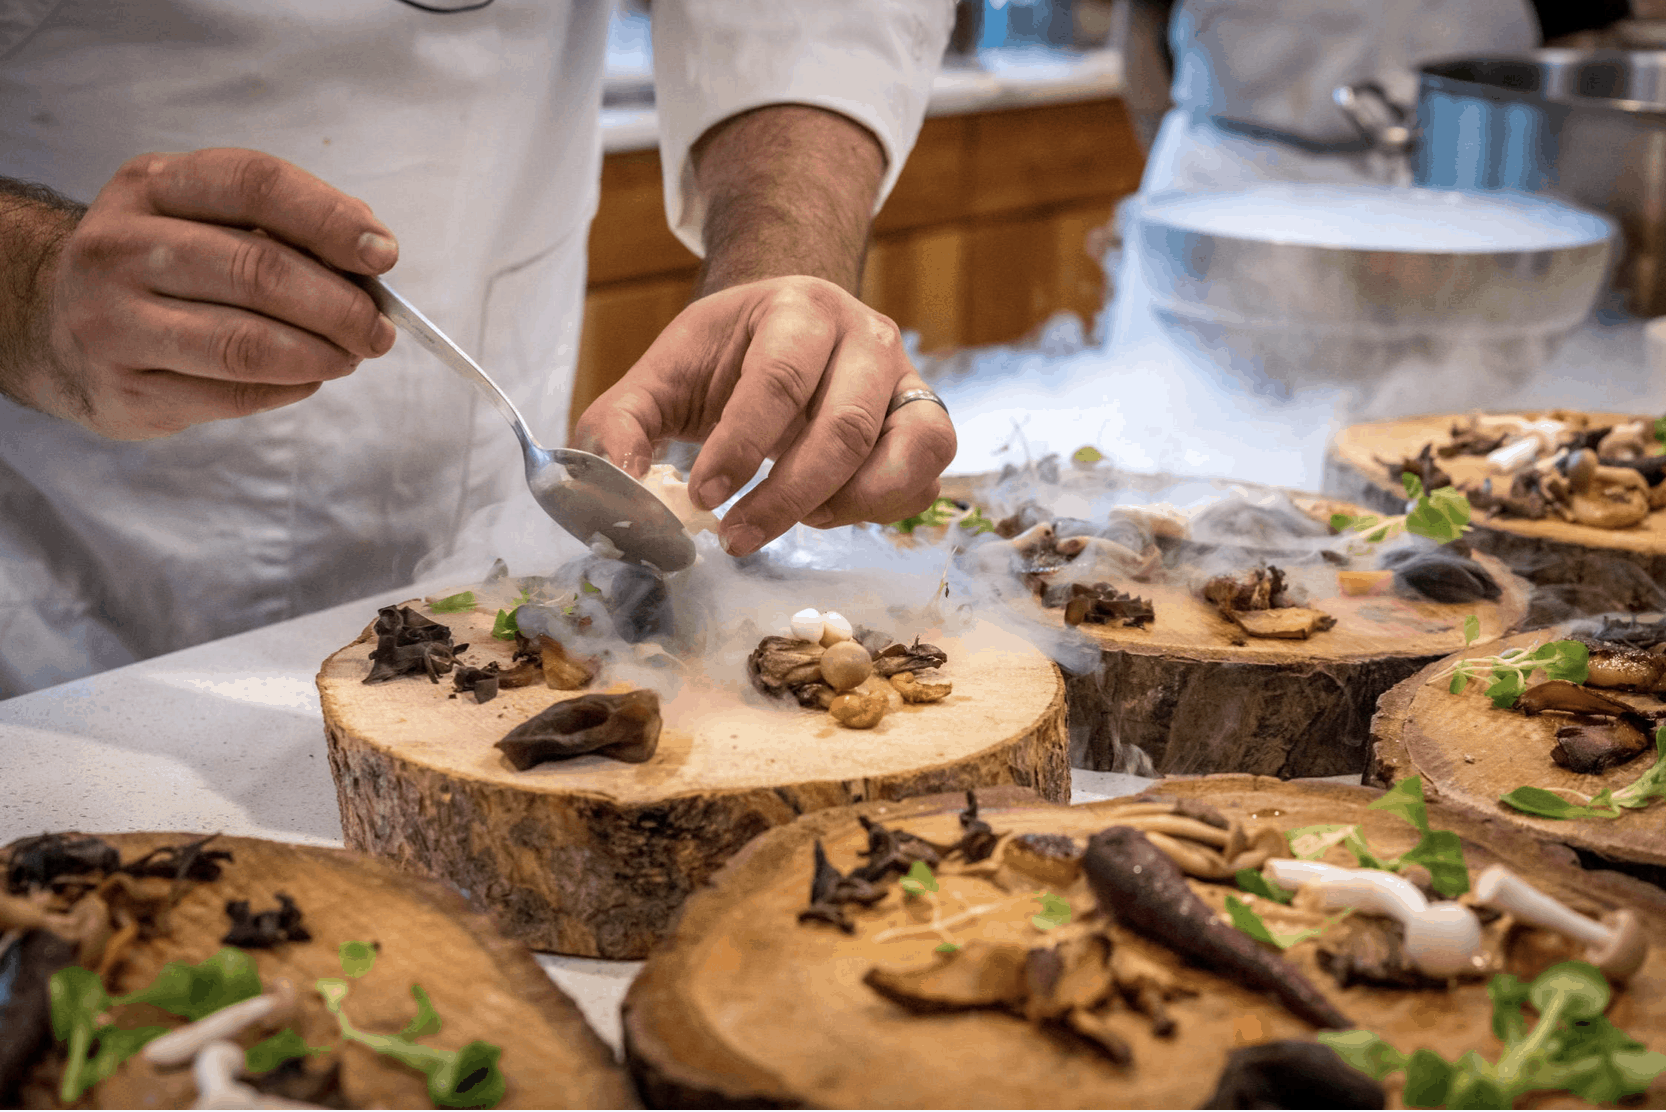 Chef plating food on wood